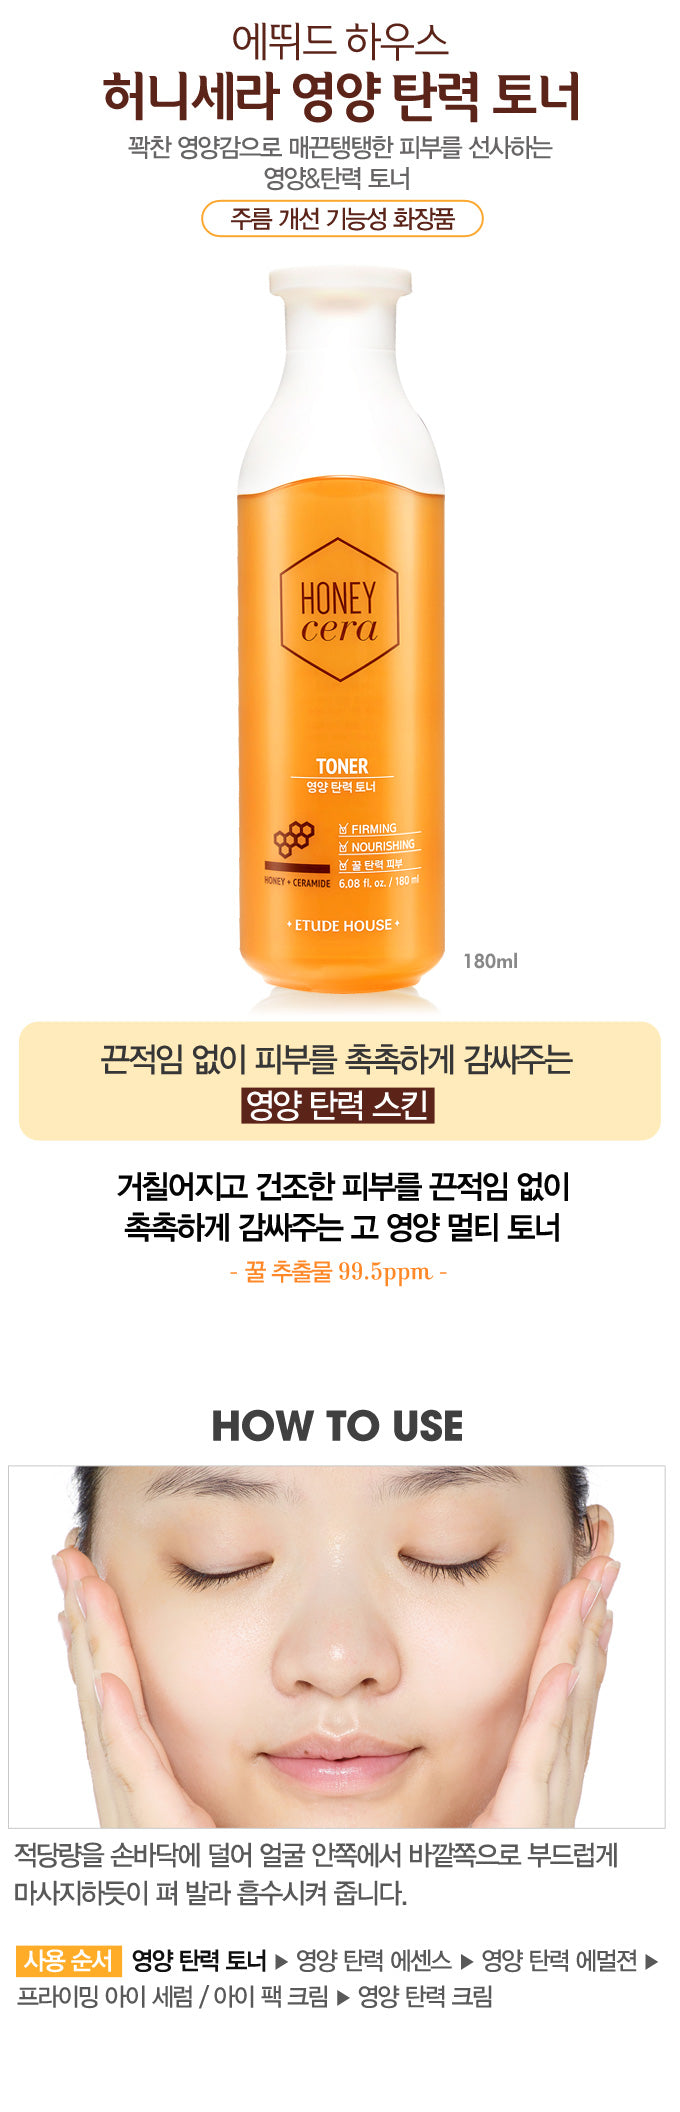 Etude House - Honey Cera Toner